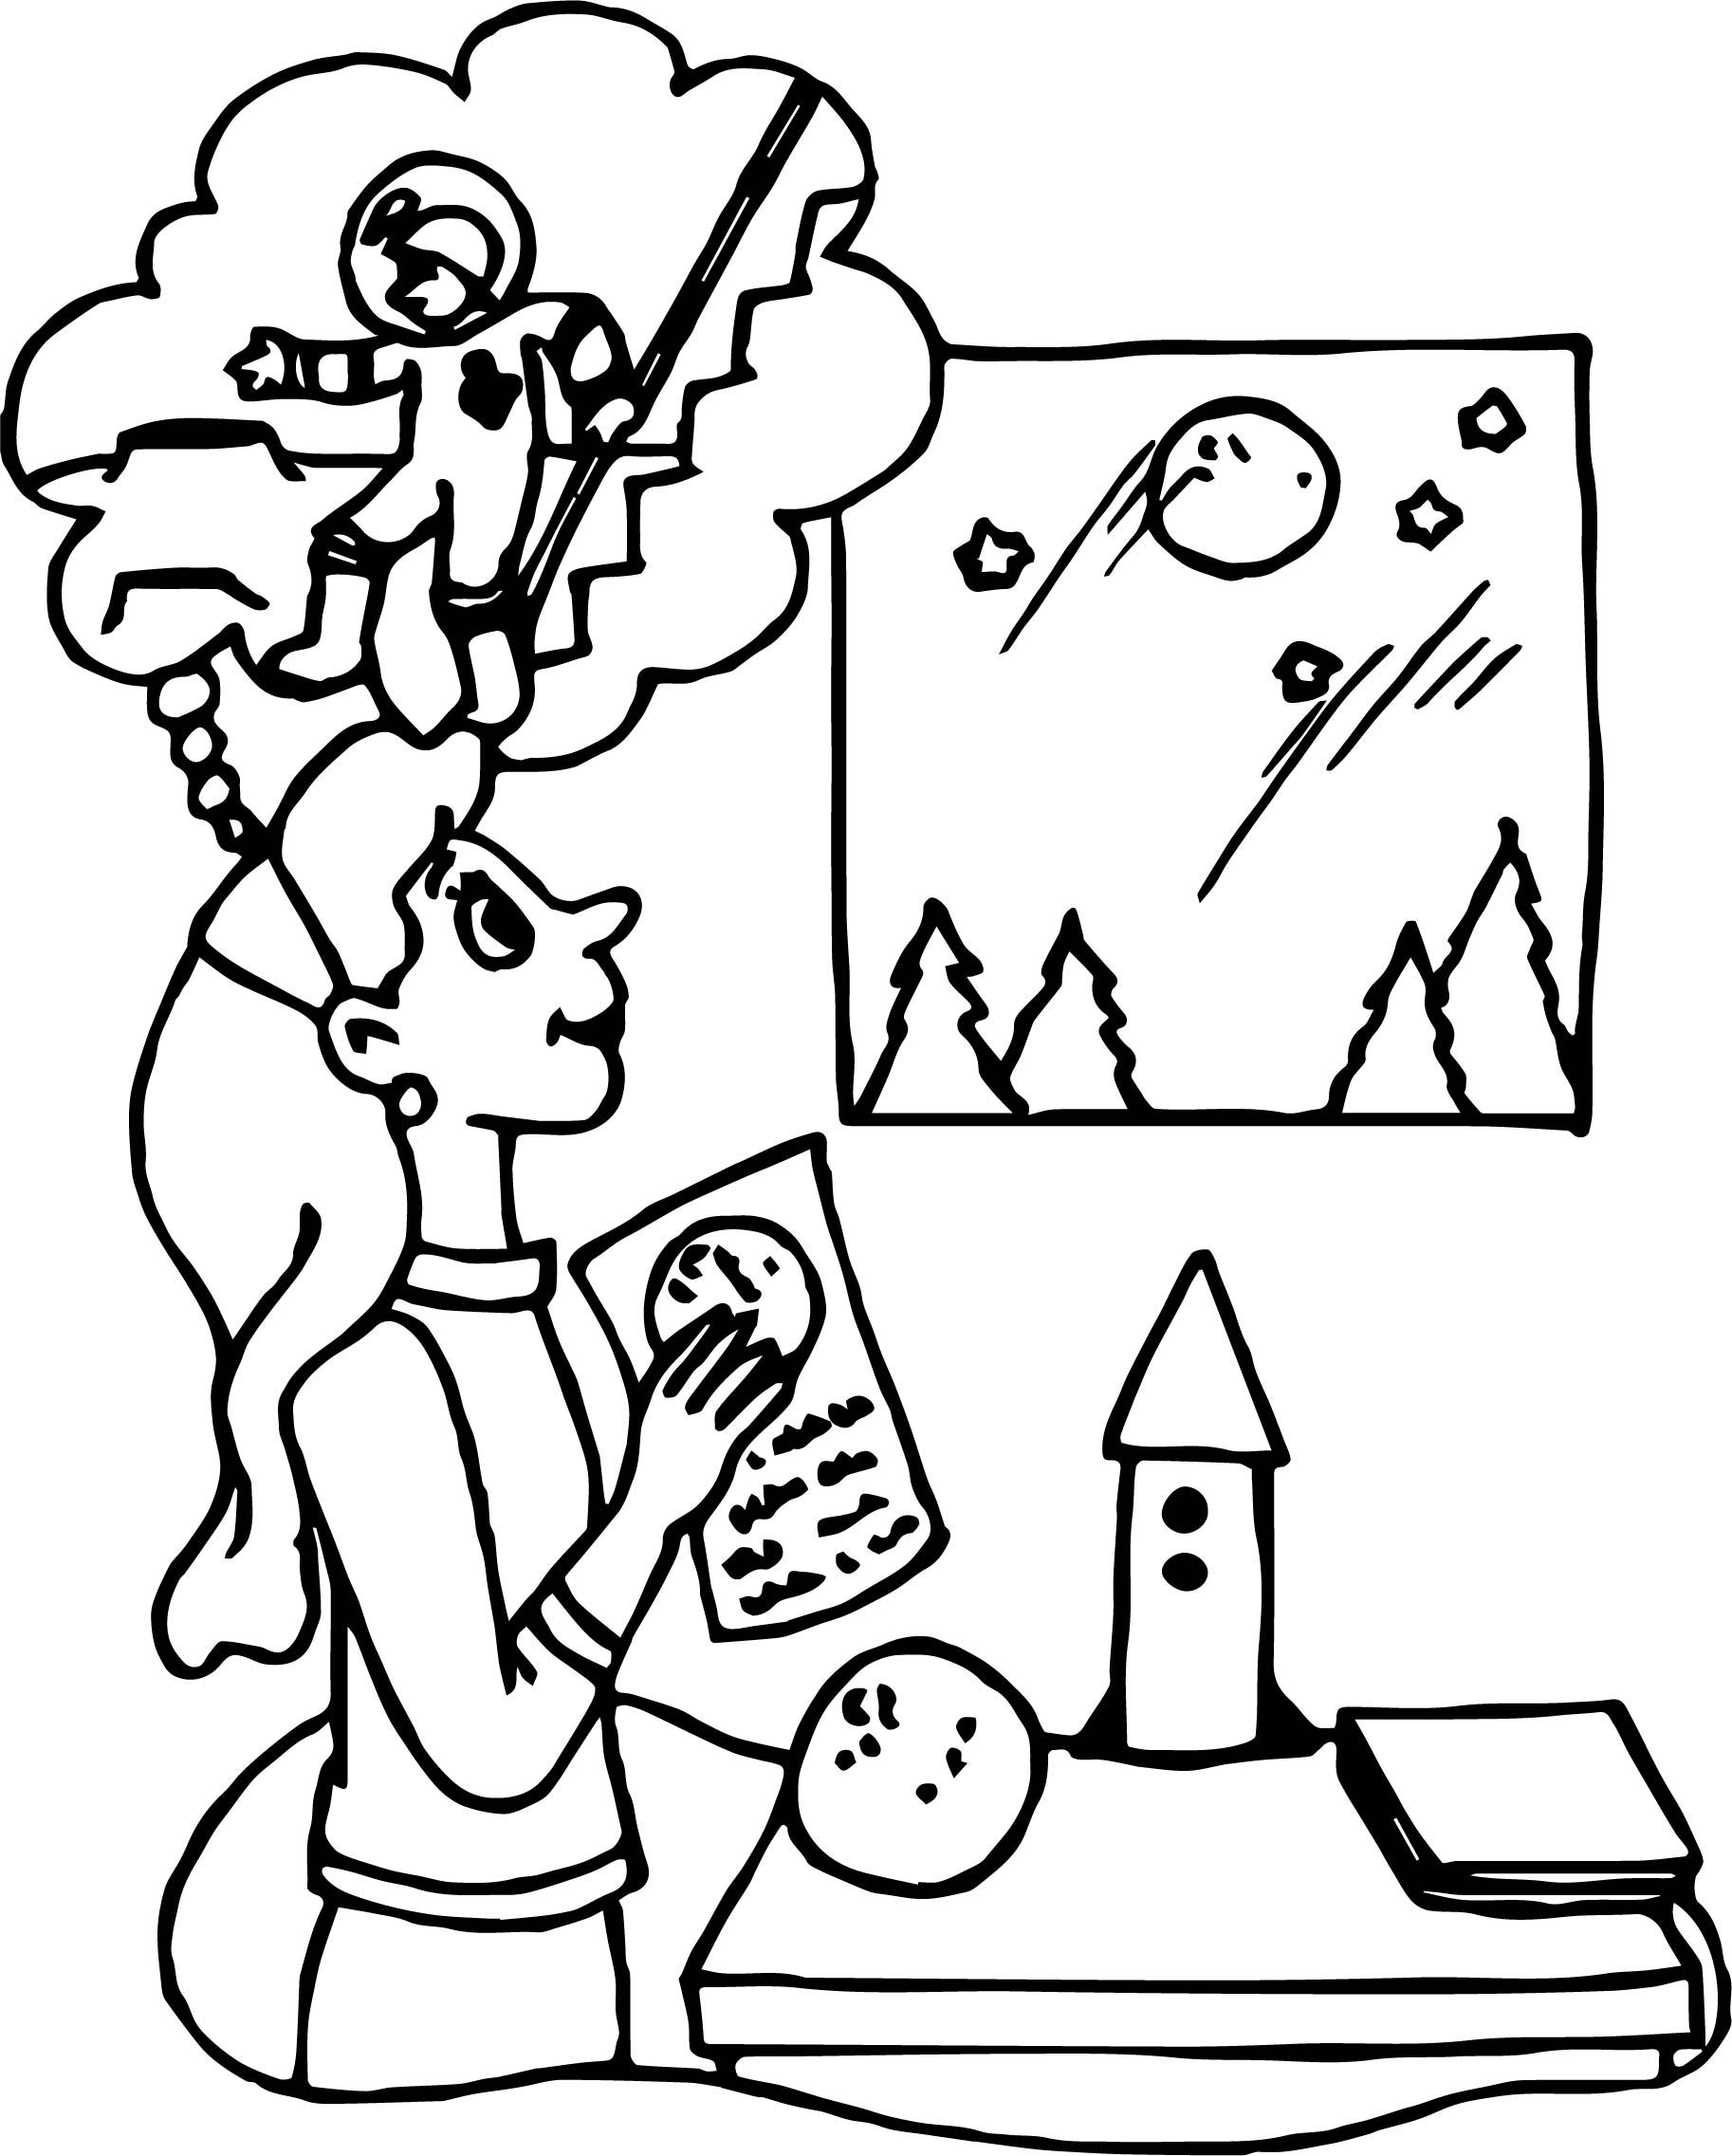 Awesome Astronaut Girl Friend Coloring Page